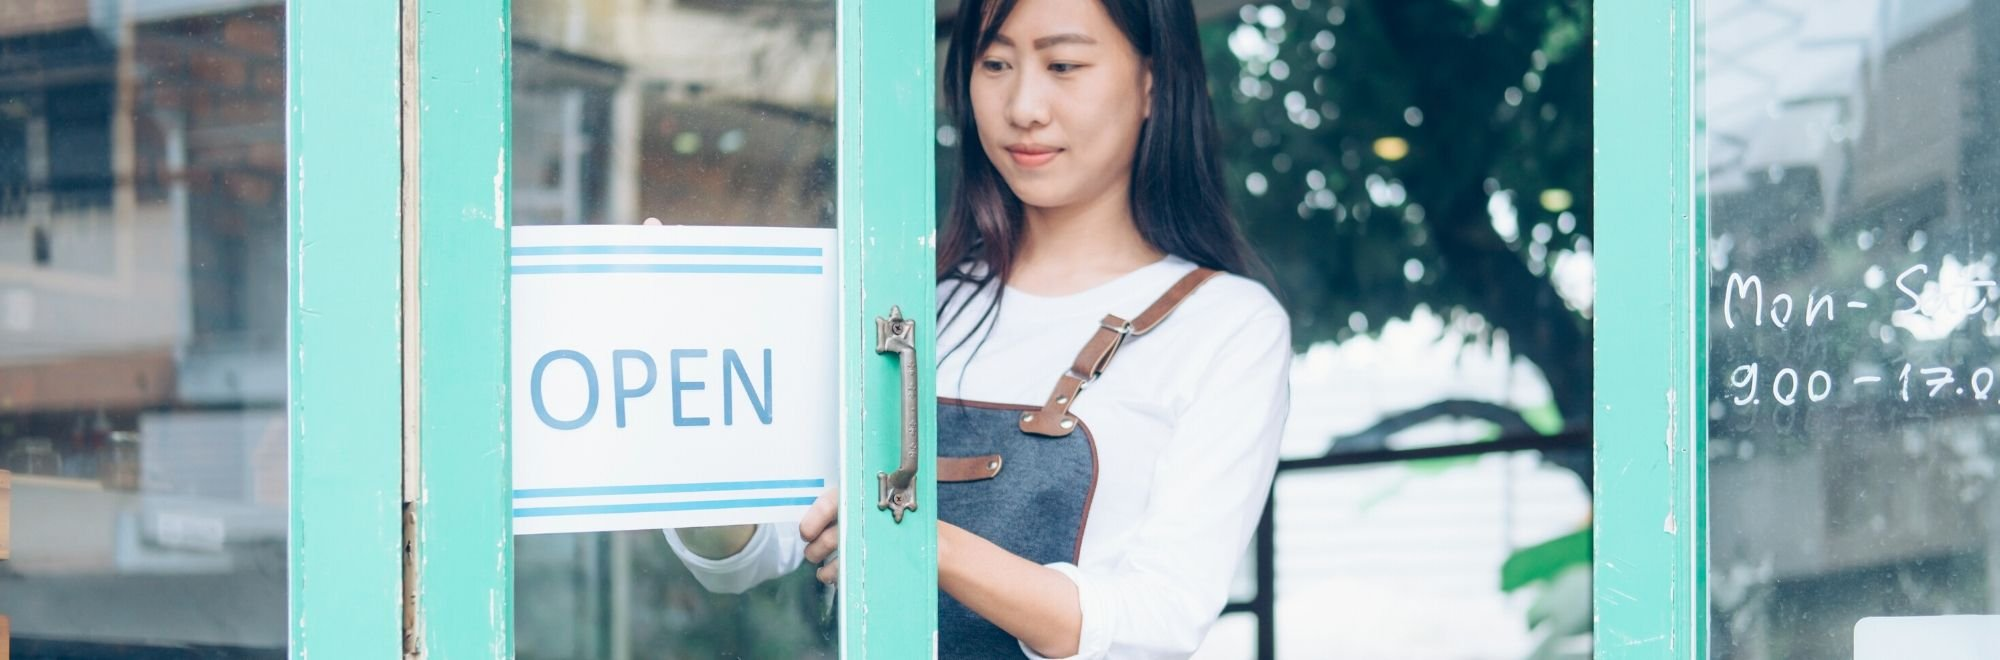 Woman hanging up Open sign in front door.